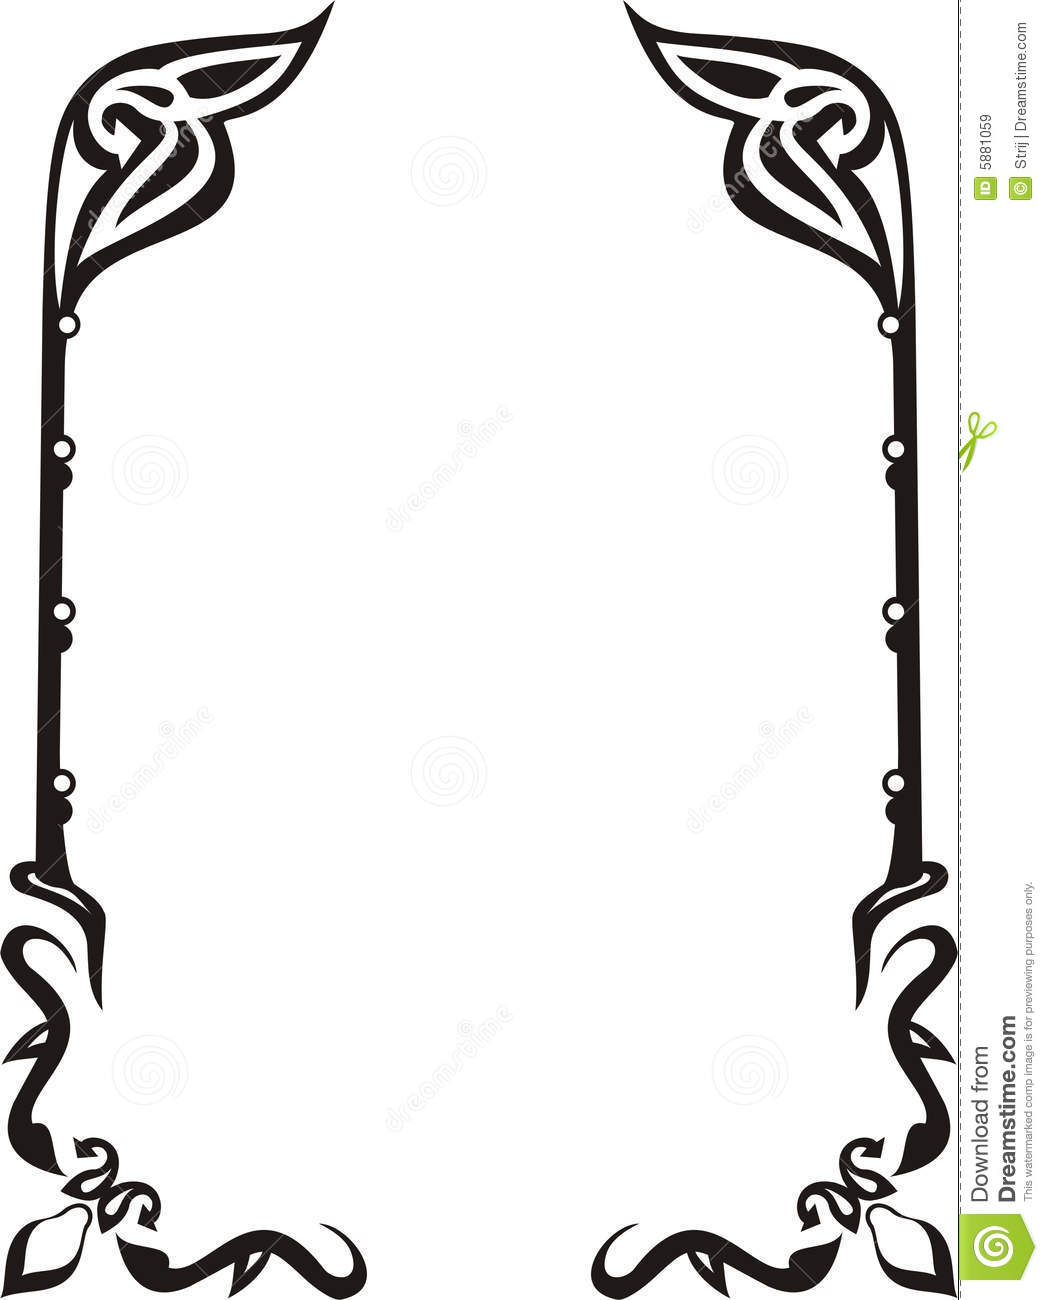 Eiland clipart lone Jpg 400×1 frame Graphic dragon